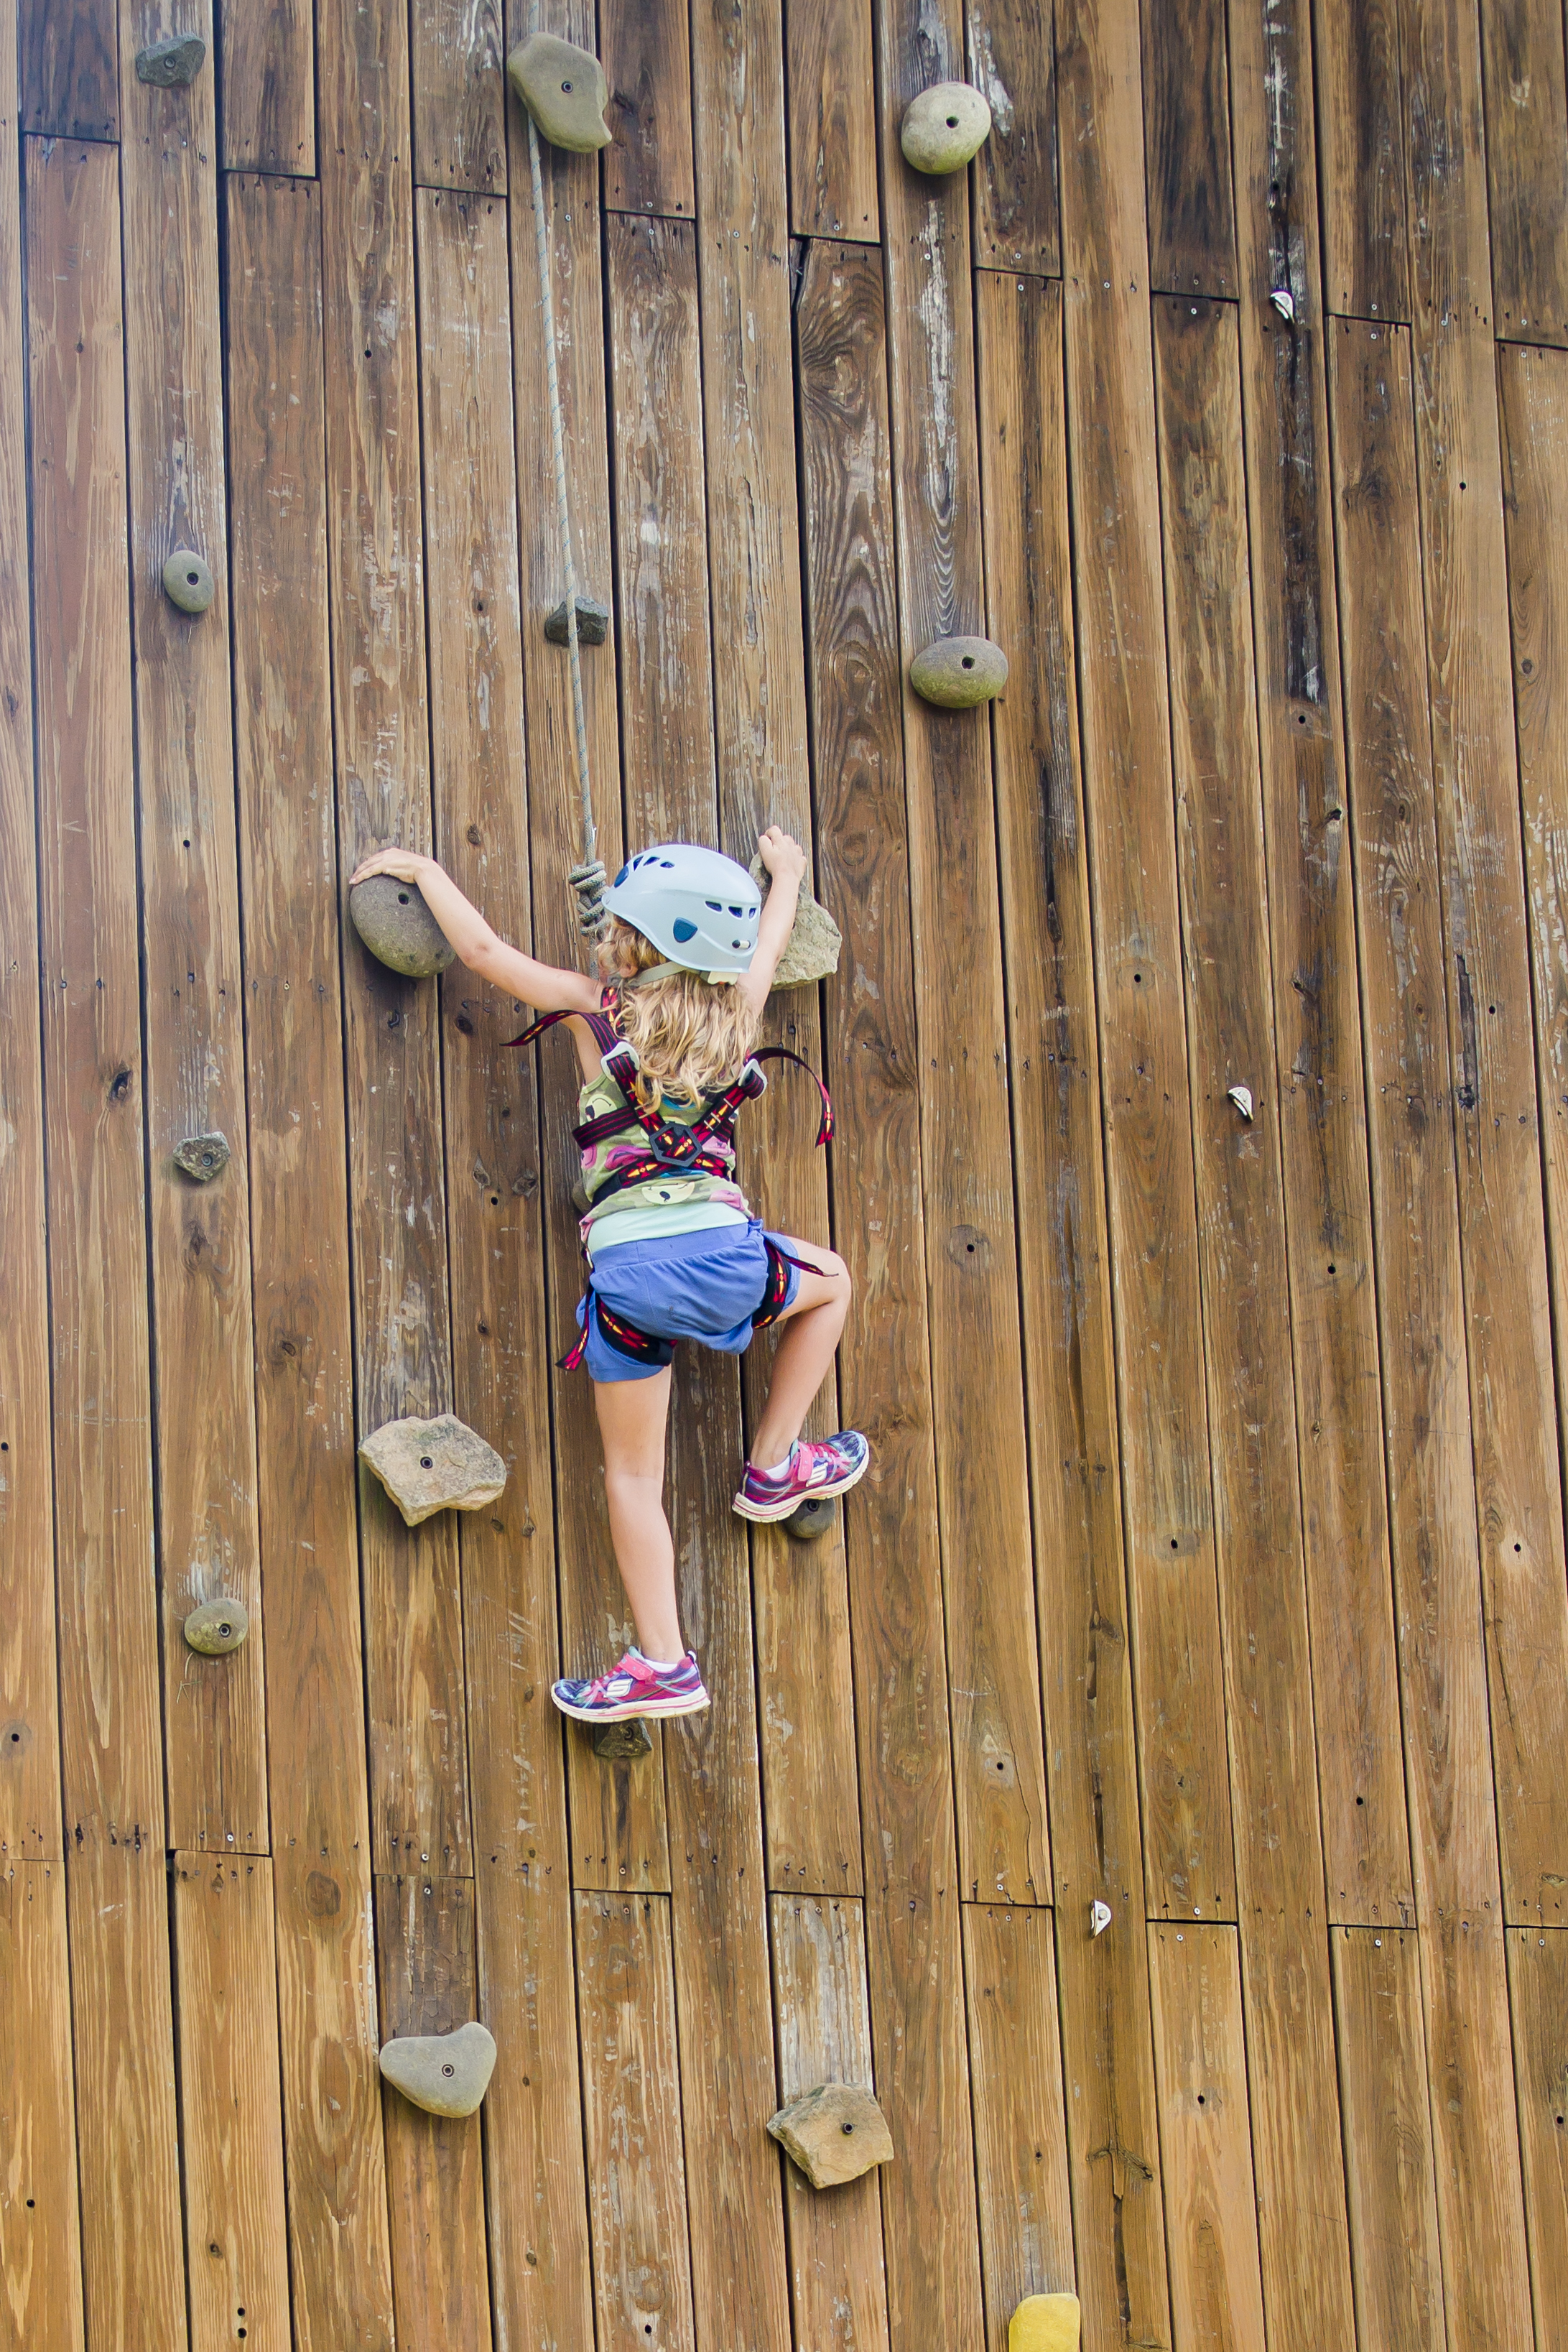 A camper climbs the rock-wall